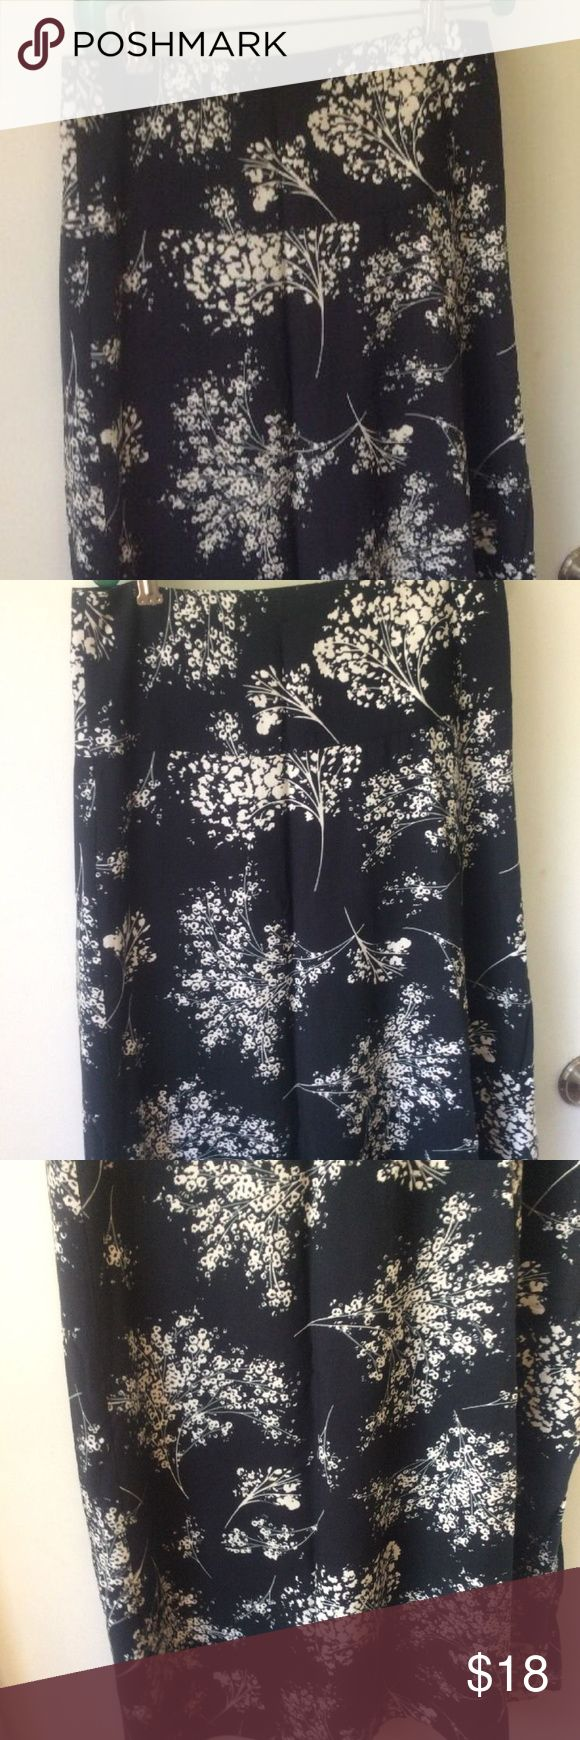 "Banana Republic Womens Petite 2 Maxi Skirt Black Banana Republic maxi skirt size 2 petite...black with white/ivory floral pattern...back zipper lined wide waist side slit..preowned gently worn  14"" waist  38"" length Banana Republic Skirts Maxi"